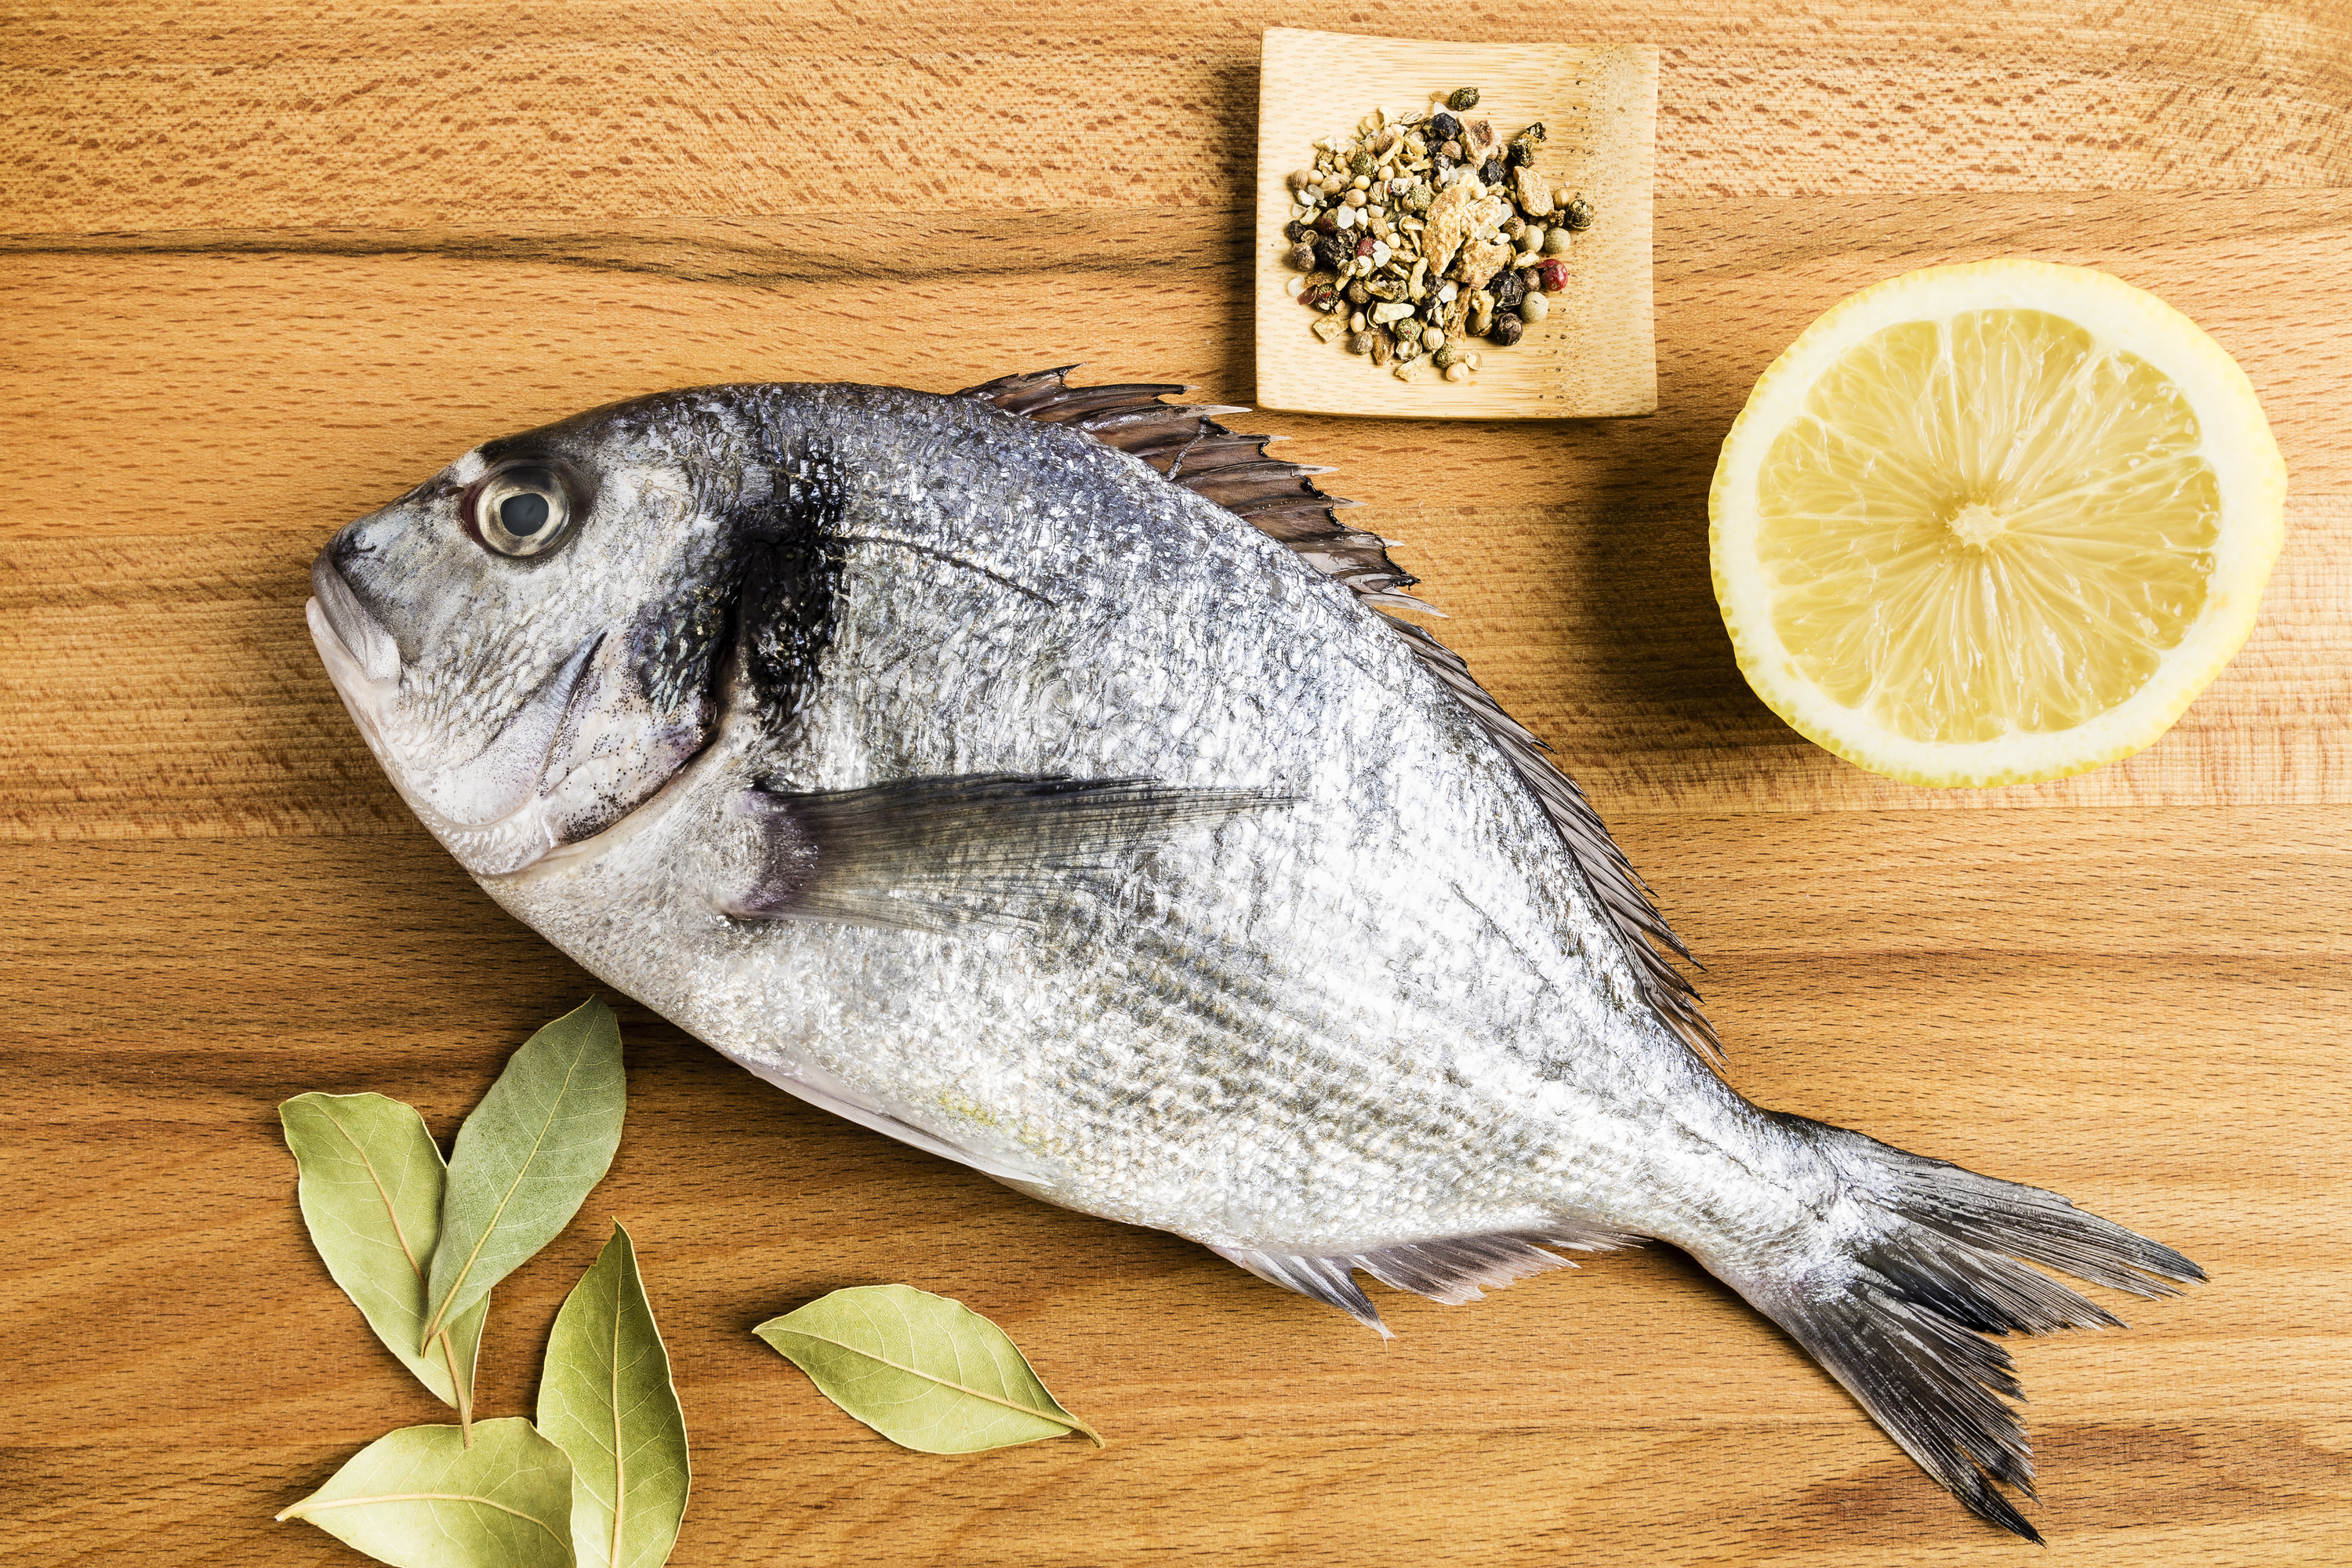 A cooked whole fish lays on its side next to a slice of lemon and some seasoning